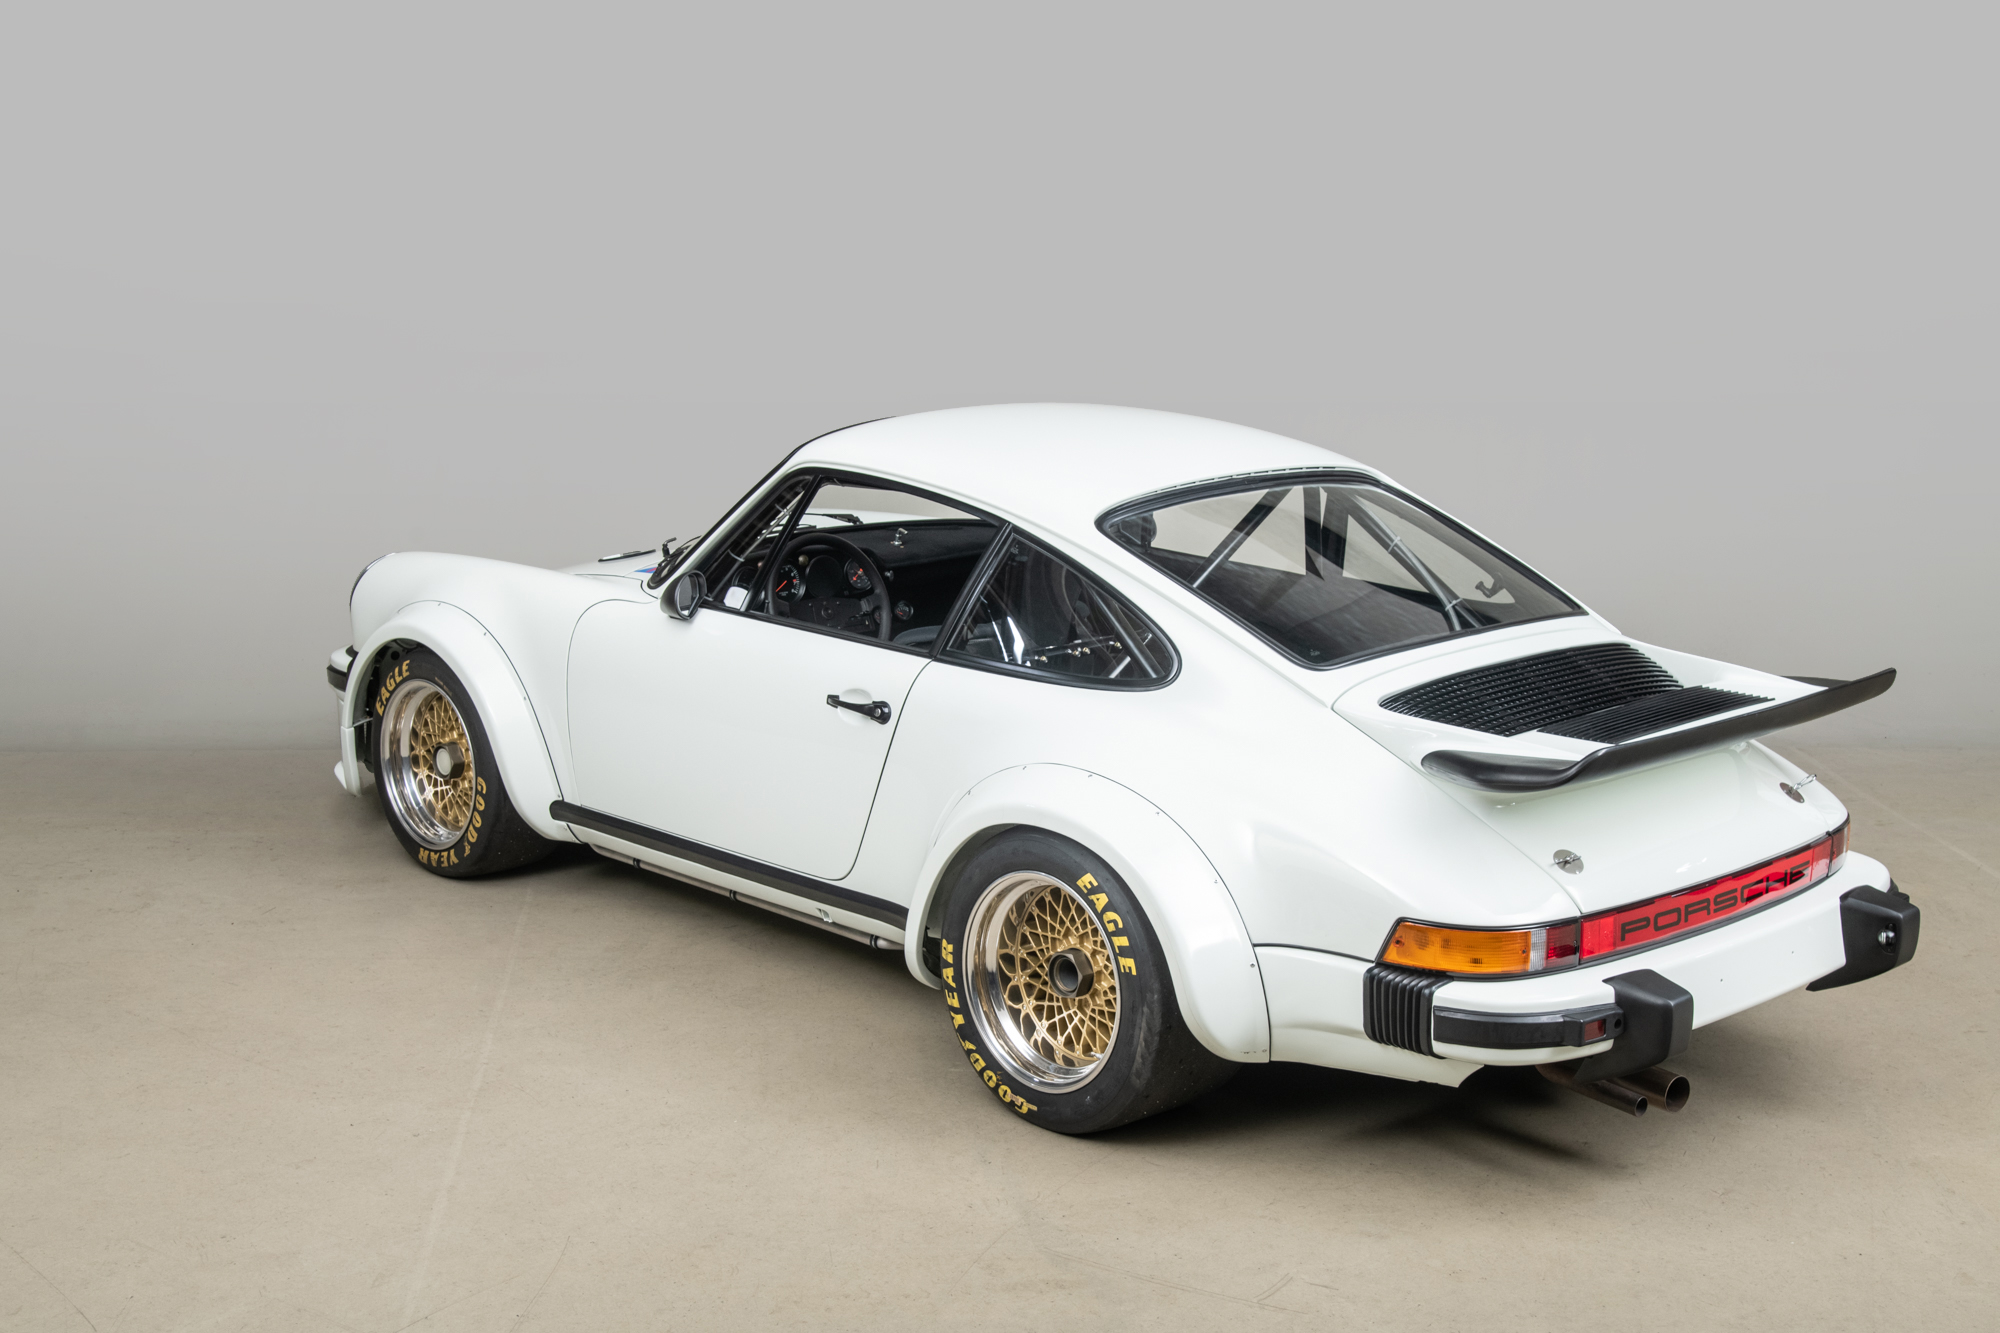 1976 Porsche 934 , GRAND PRIX WHITE, VIN 9306700157